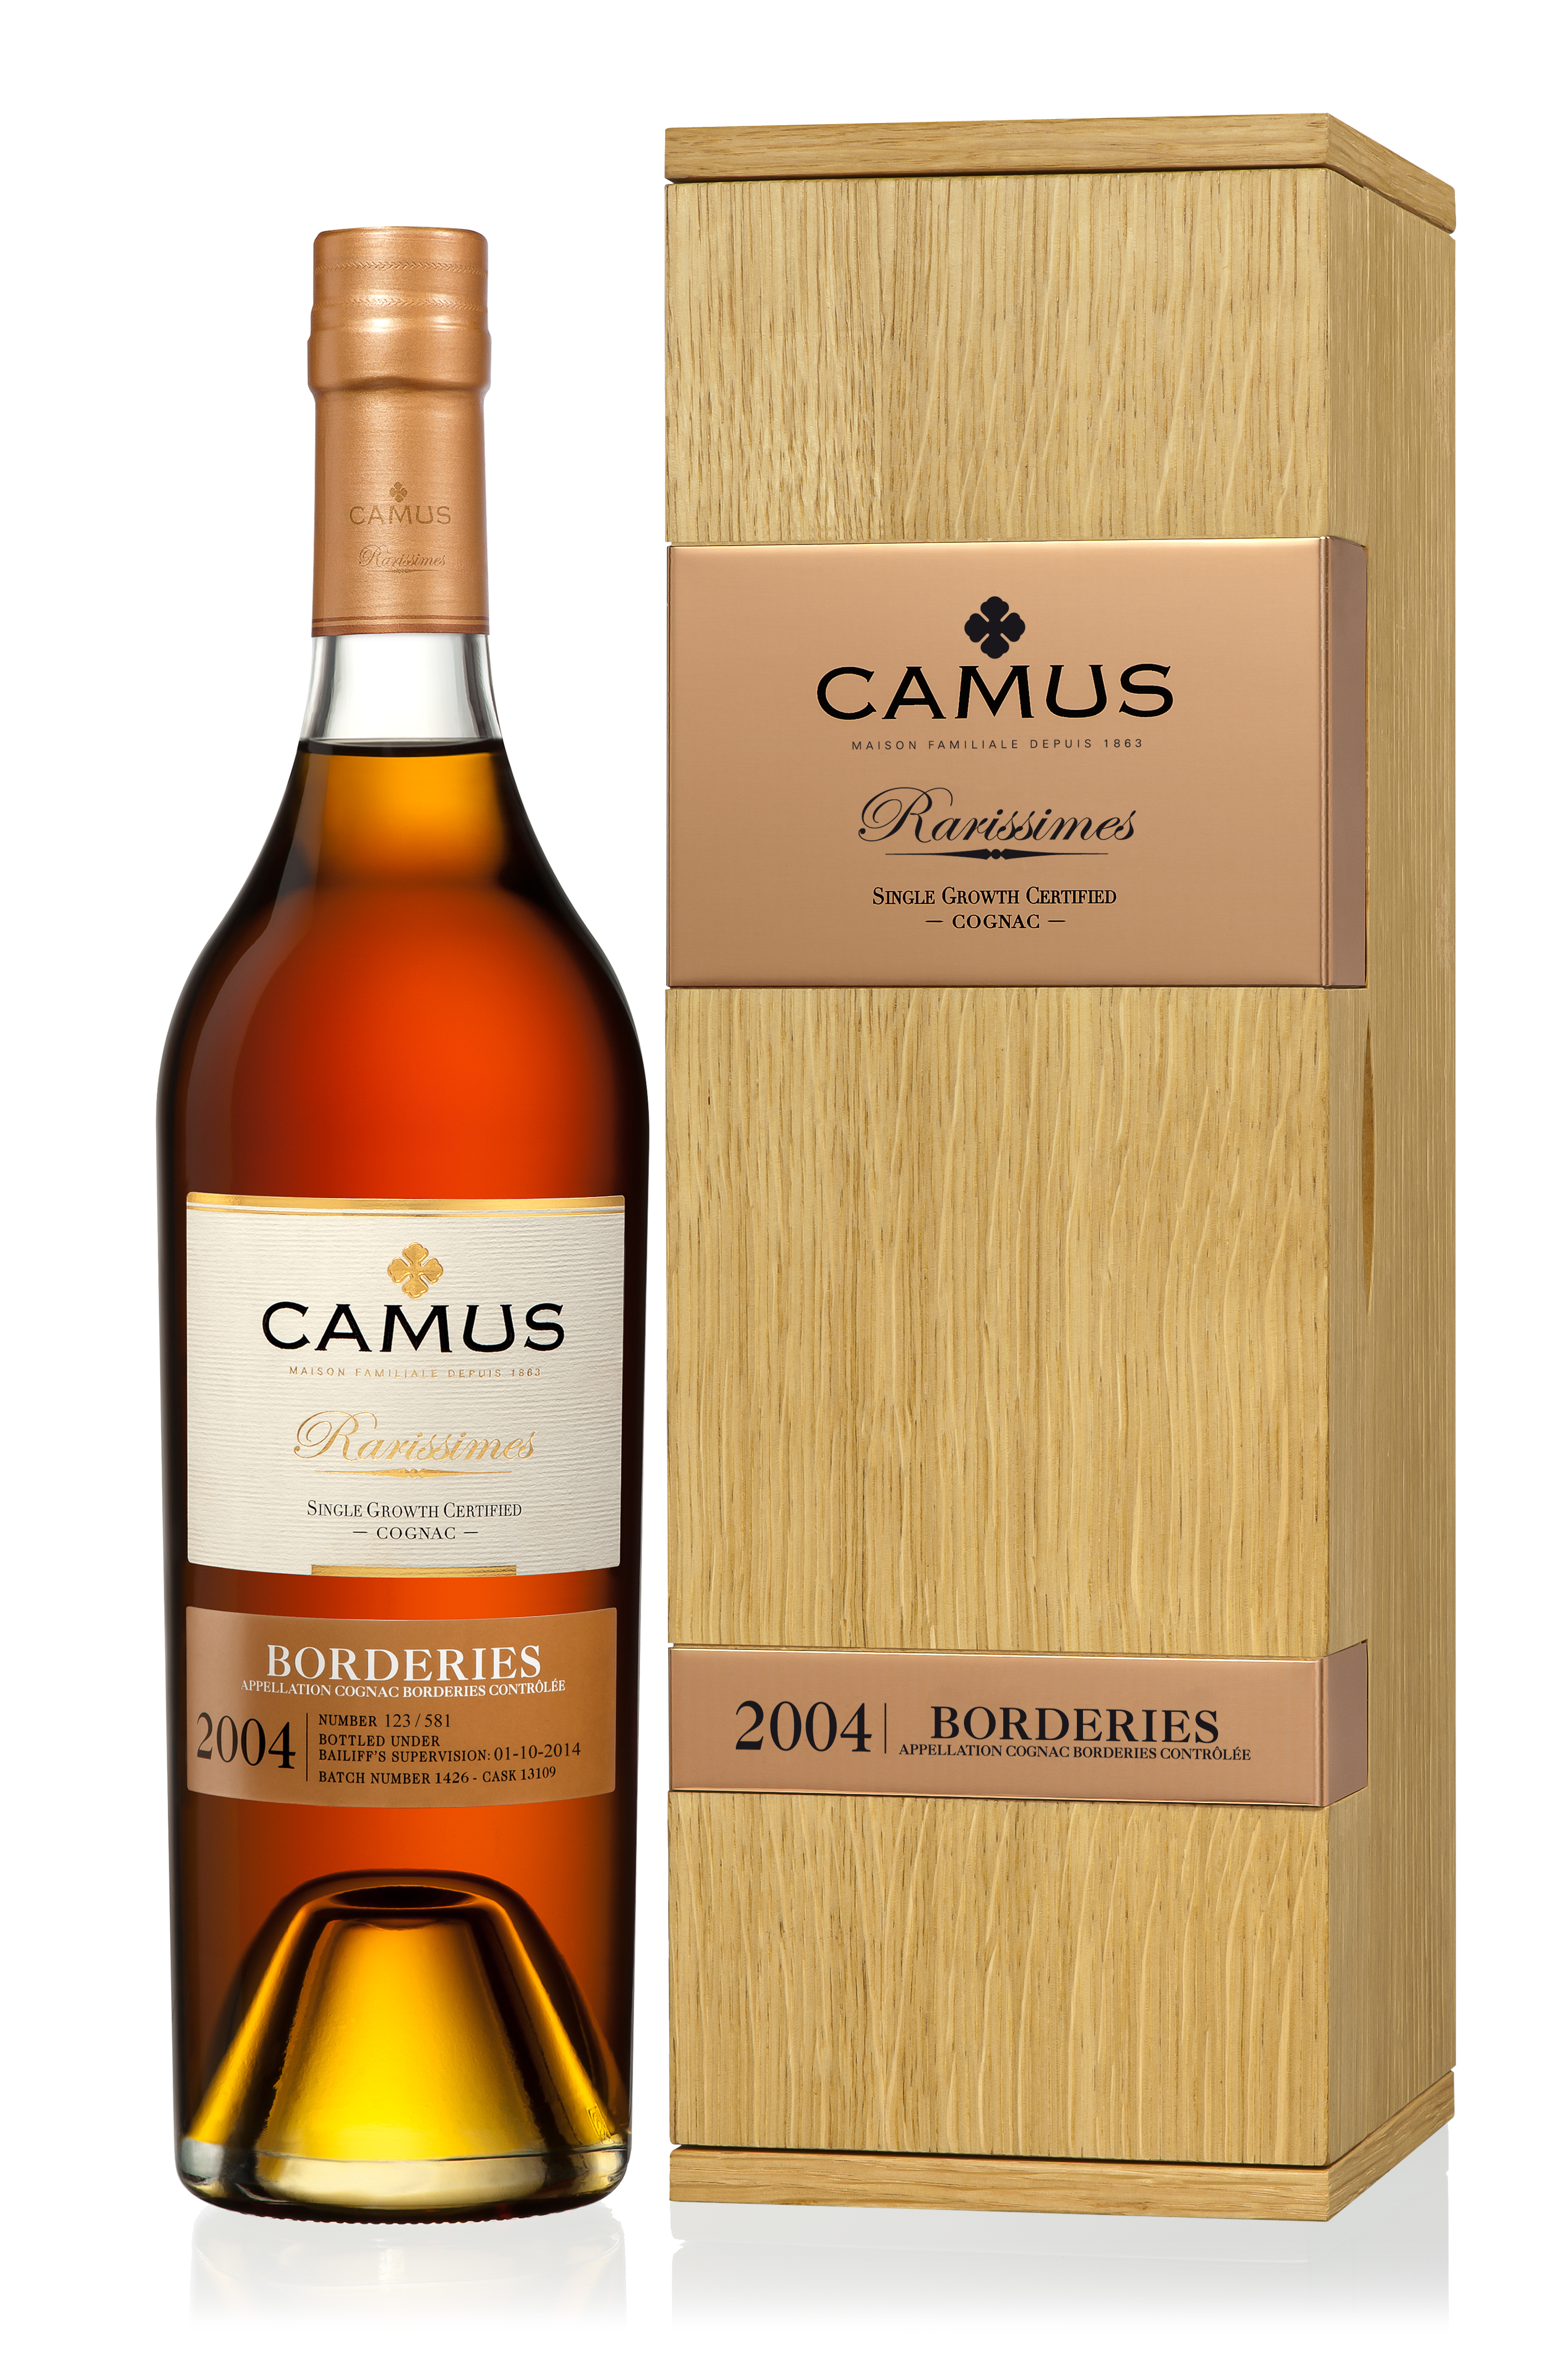 CAMUS RARISSIMES 2004 BORDERIES WITH GIFTBOX